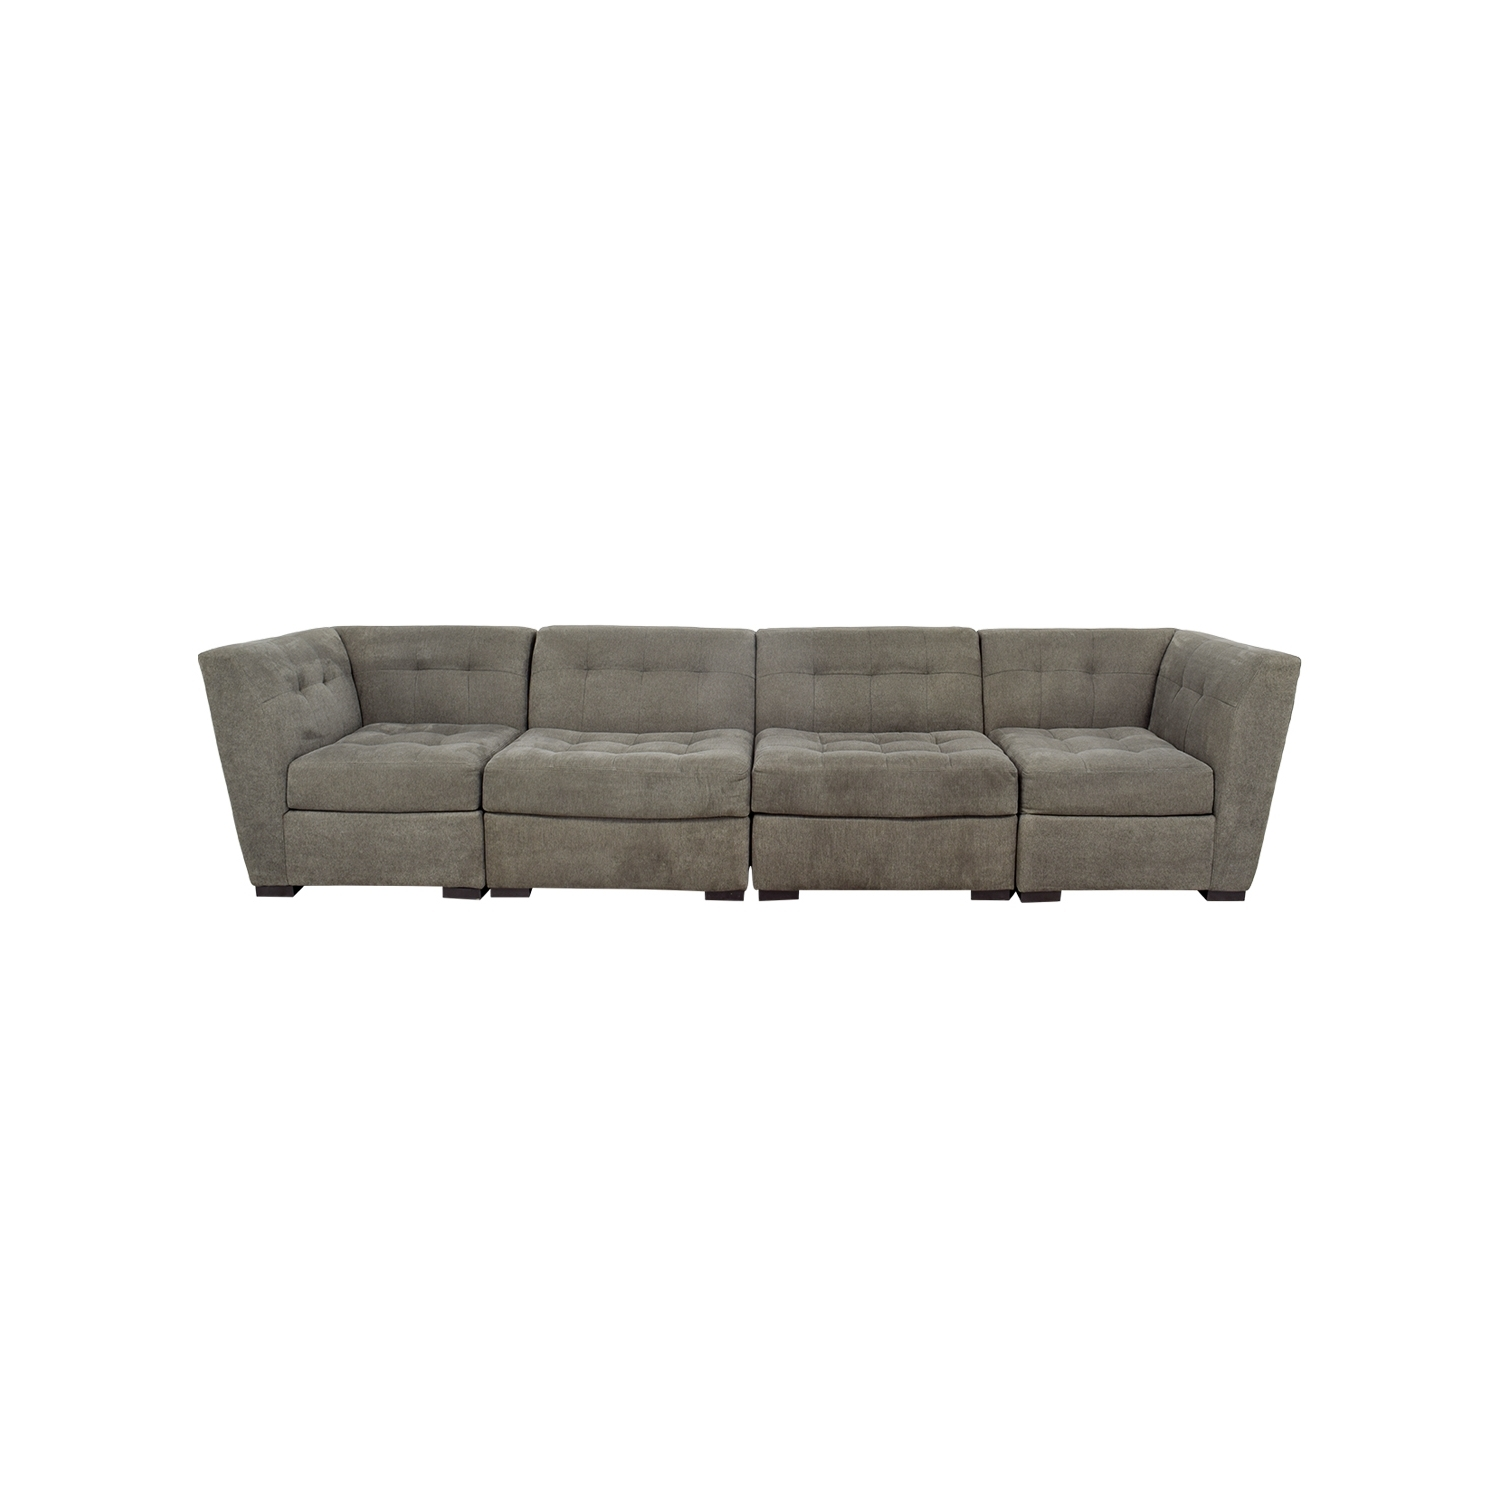 Leather Sofa Italsofa Leather Sofa Macys